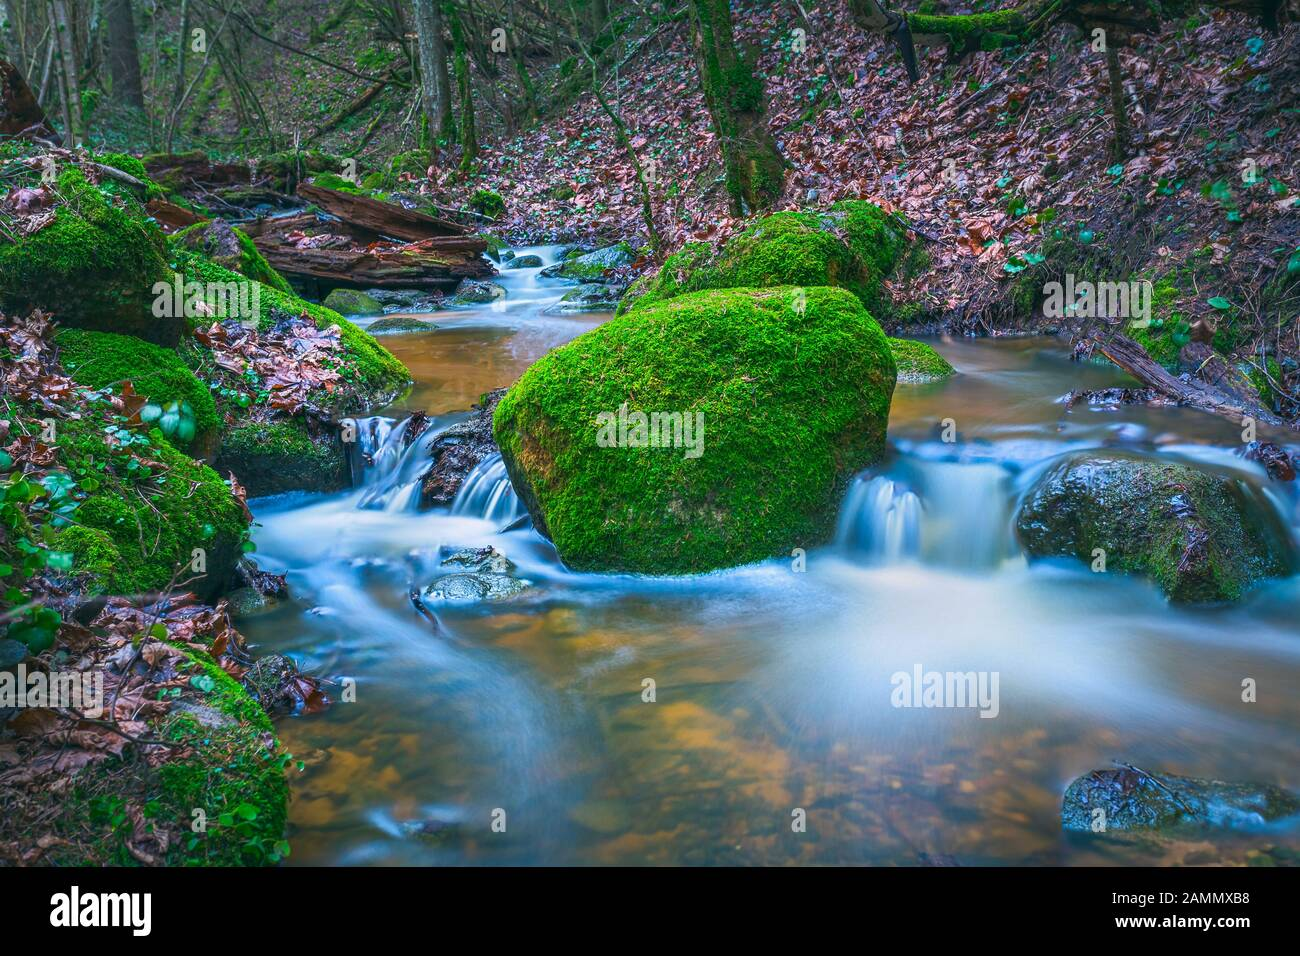 Green landscape with small river in the forests Stock Photo